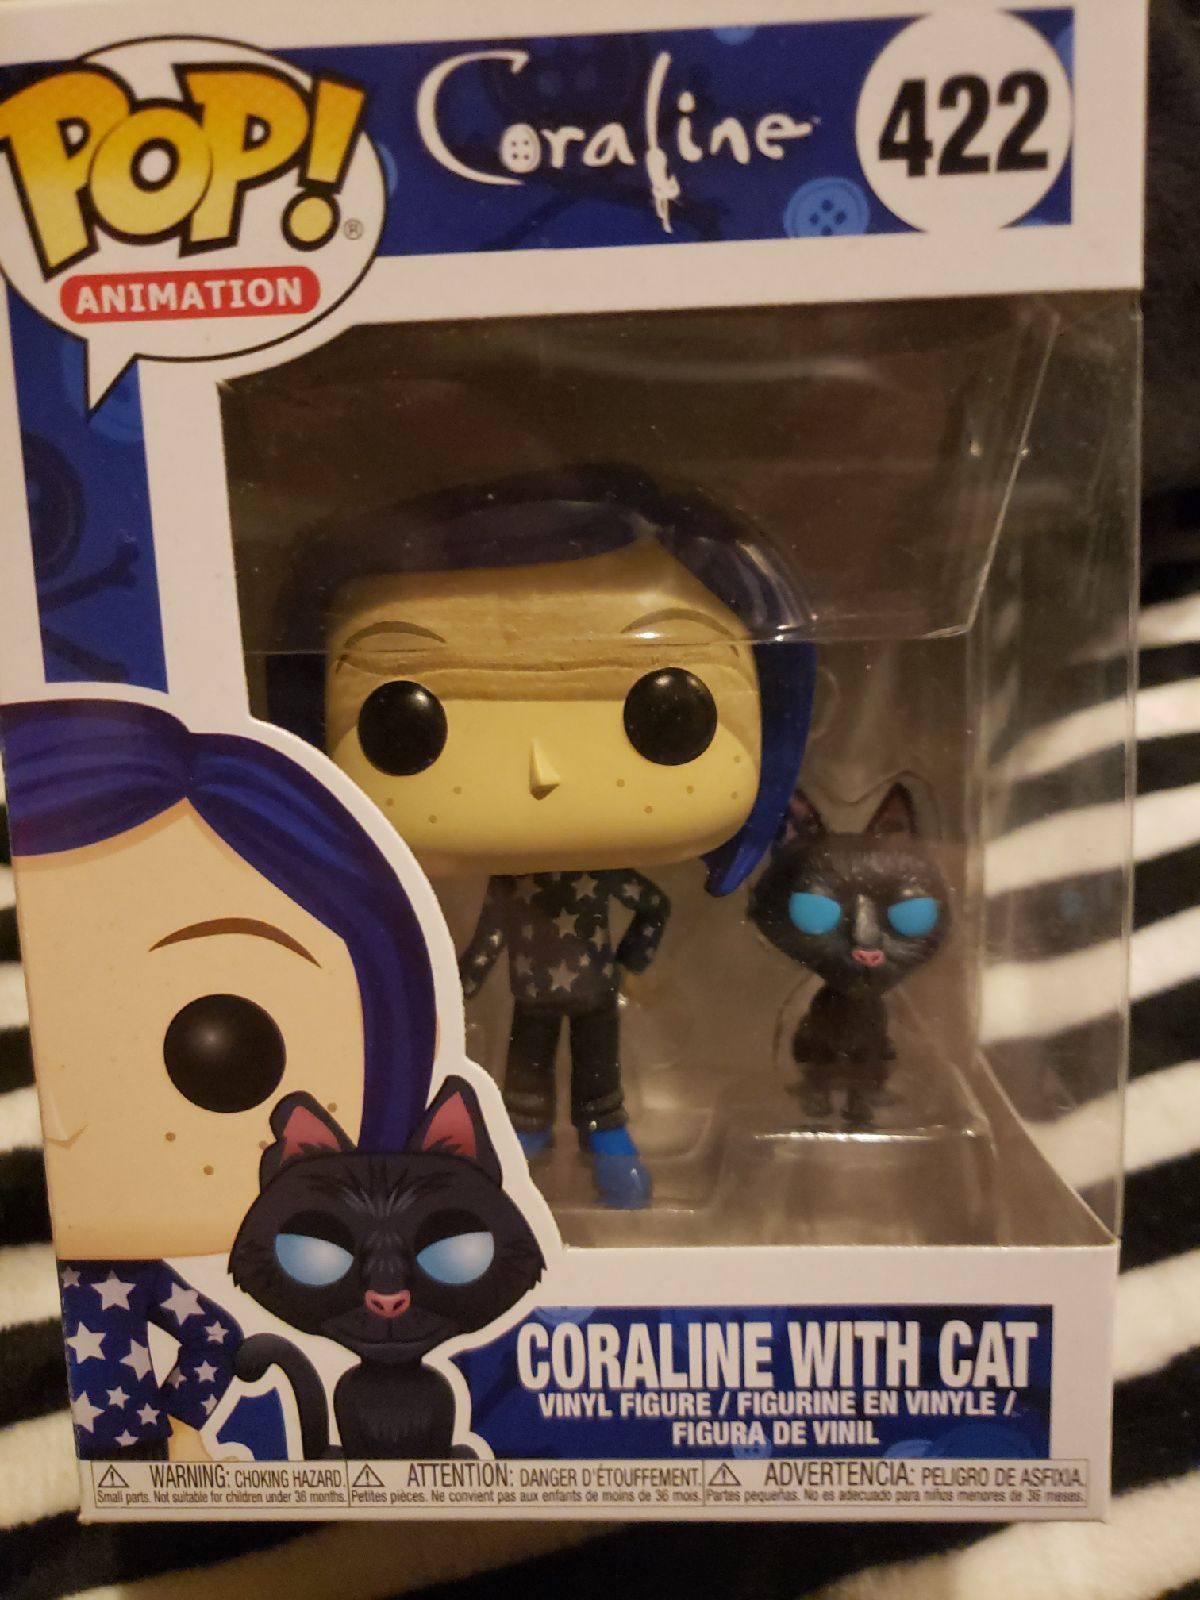 Brand New Coraline With Cat Funko Pop Ready For You To Take Her Home And Add To Your Collection Coraline Funko Pop Vinyl Figures